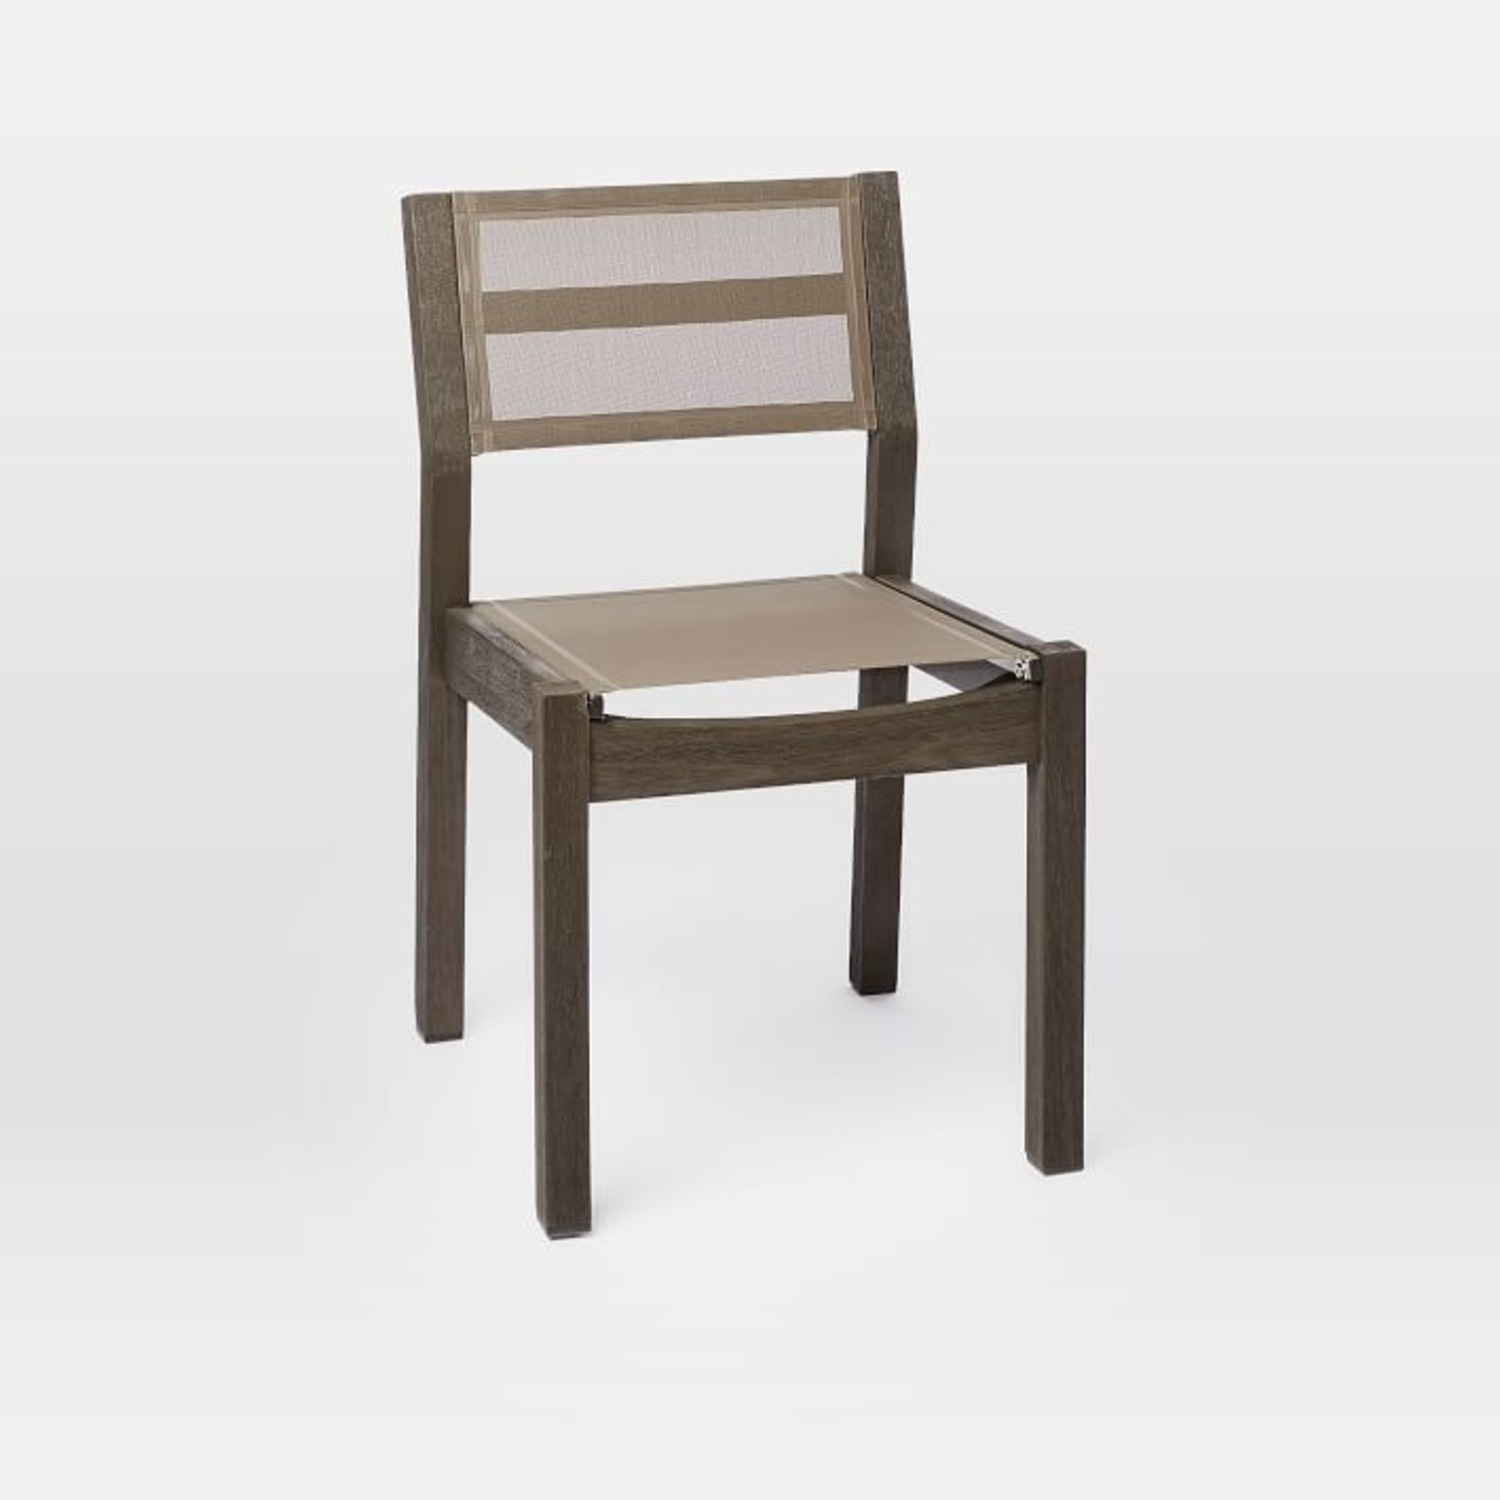 West Elm Portside Textiline Dining Chair - image-1